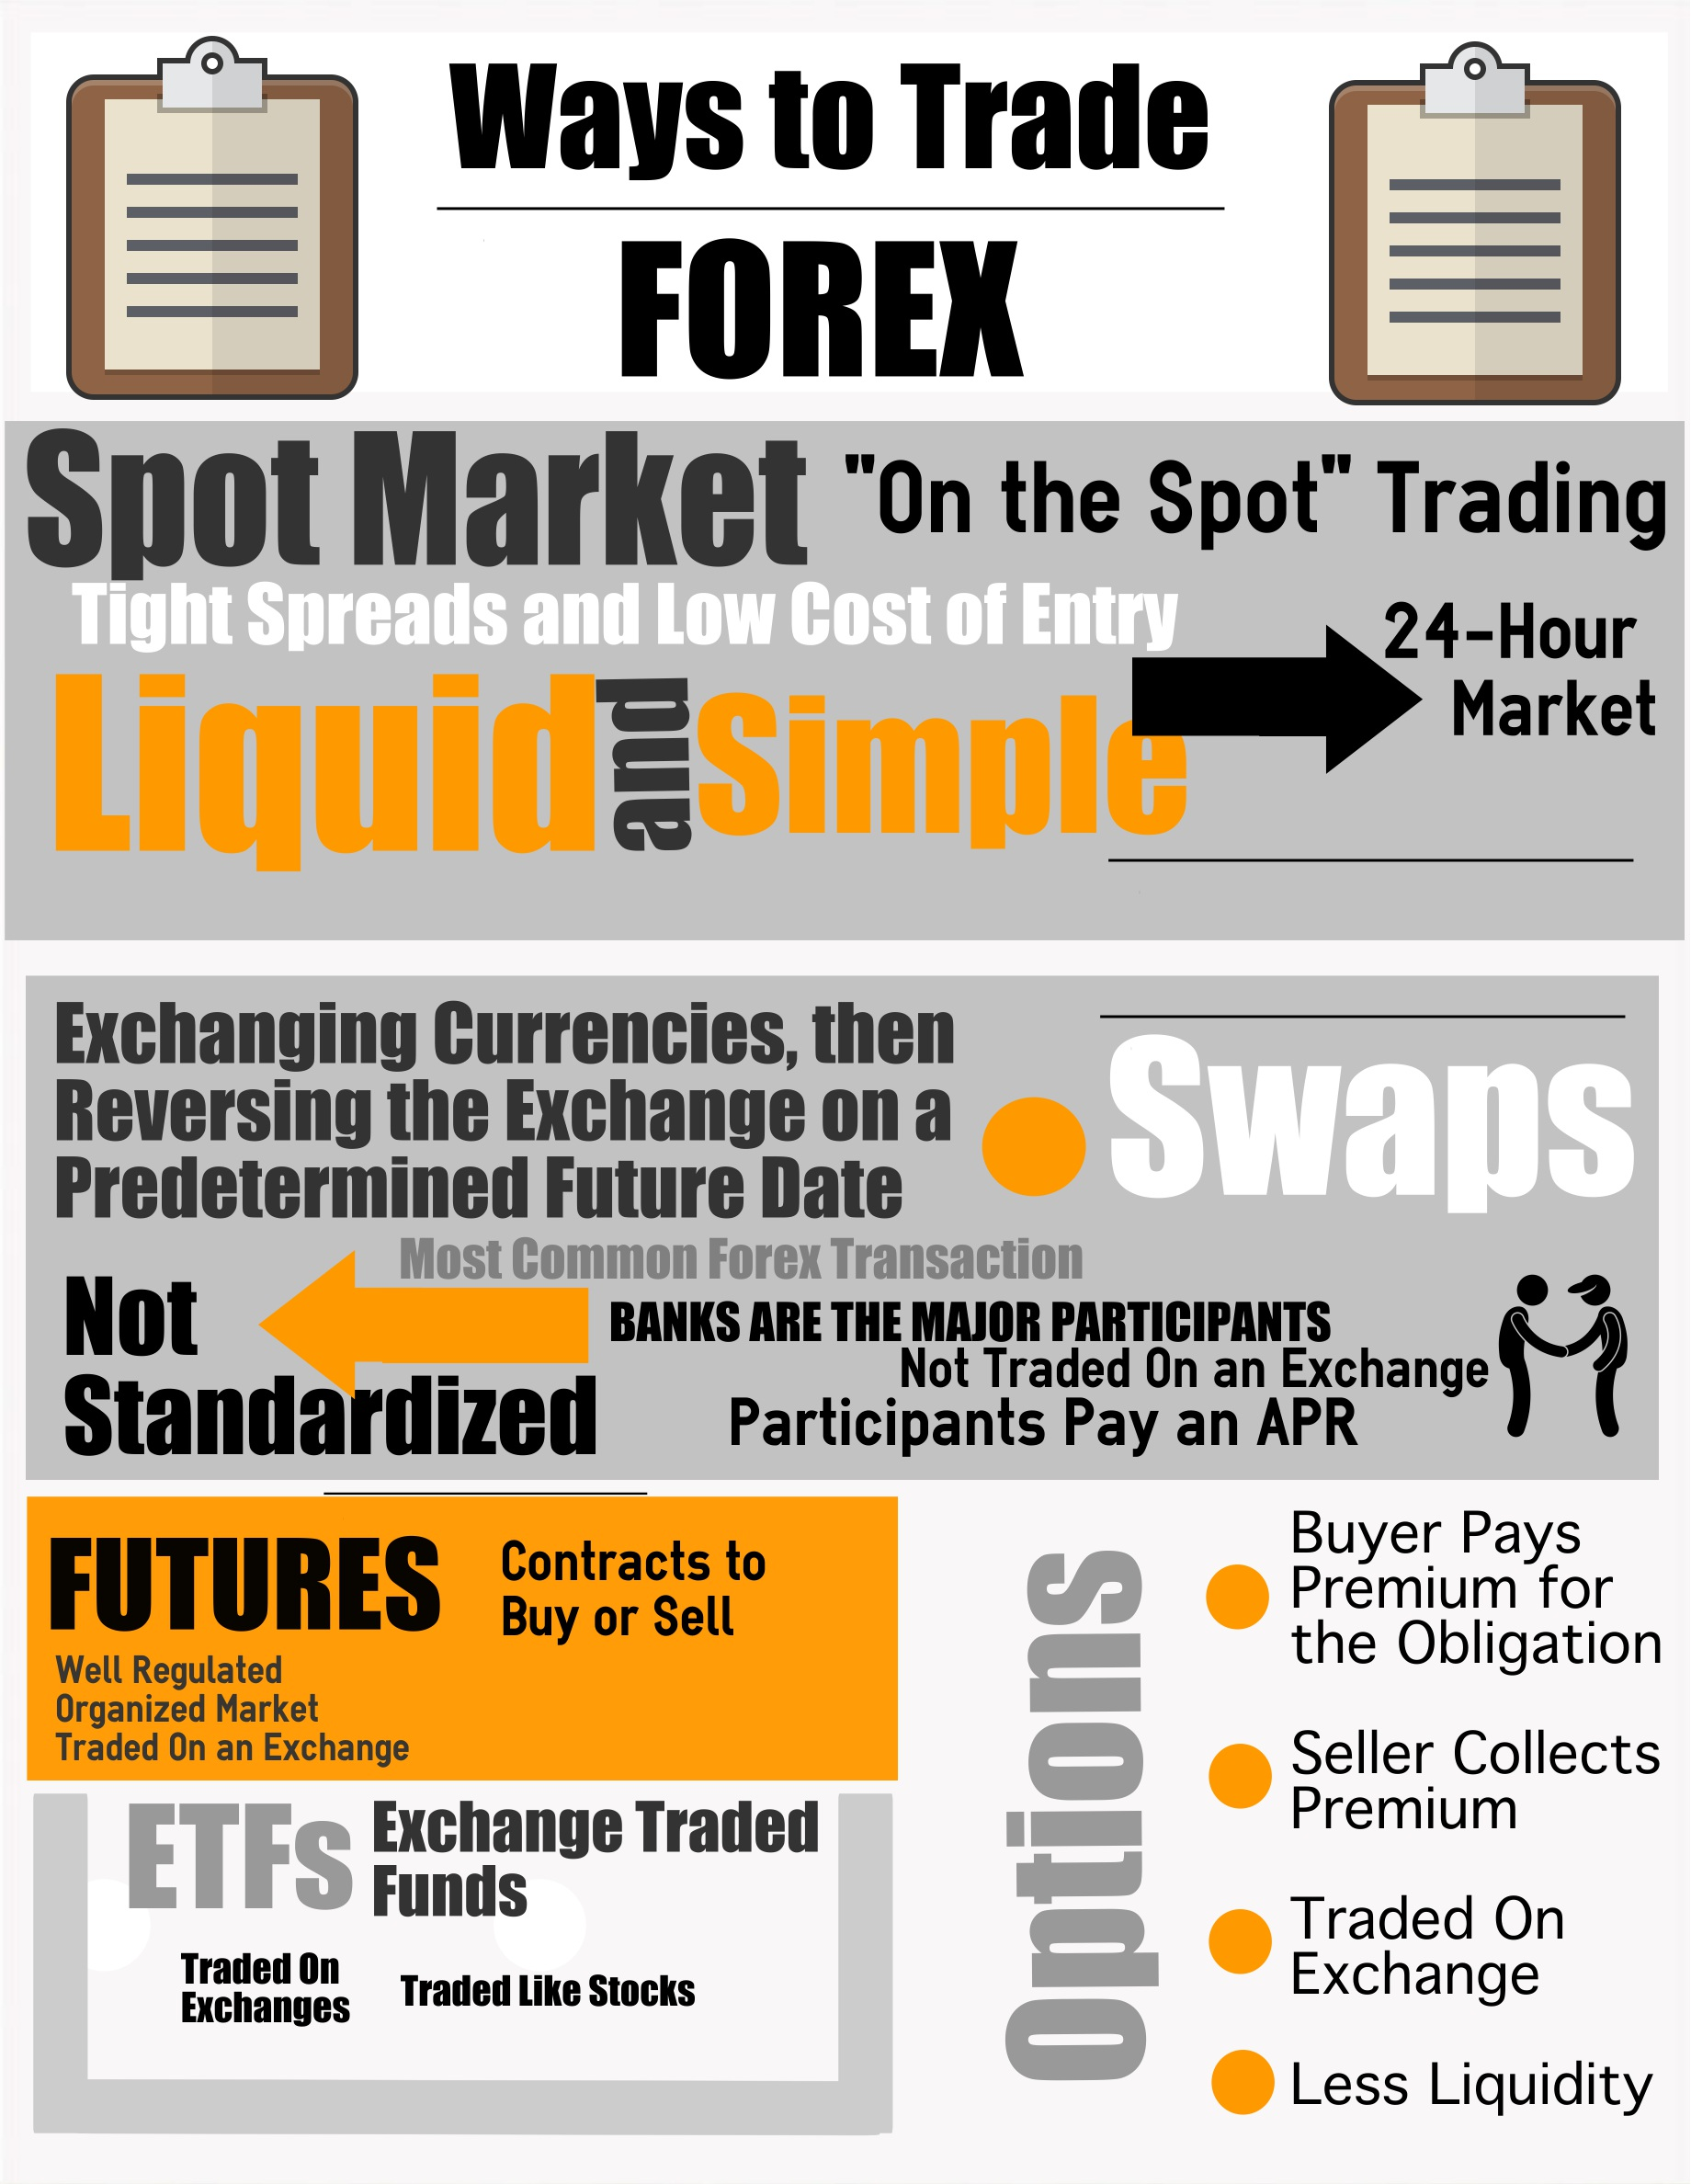 How do people trade forex